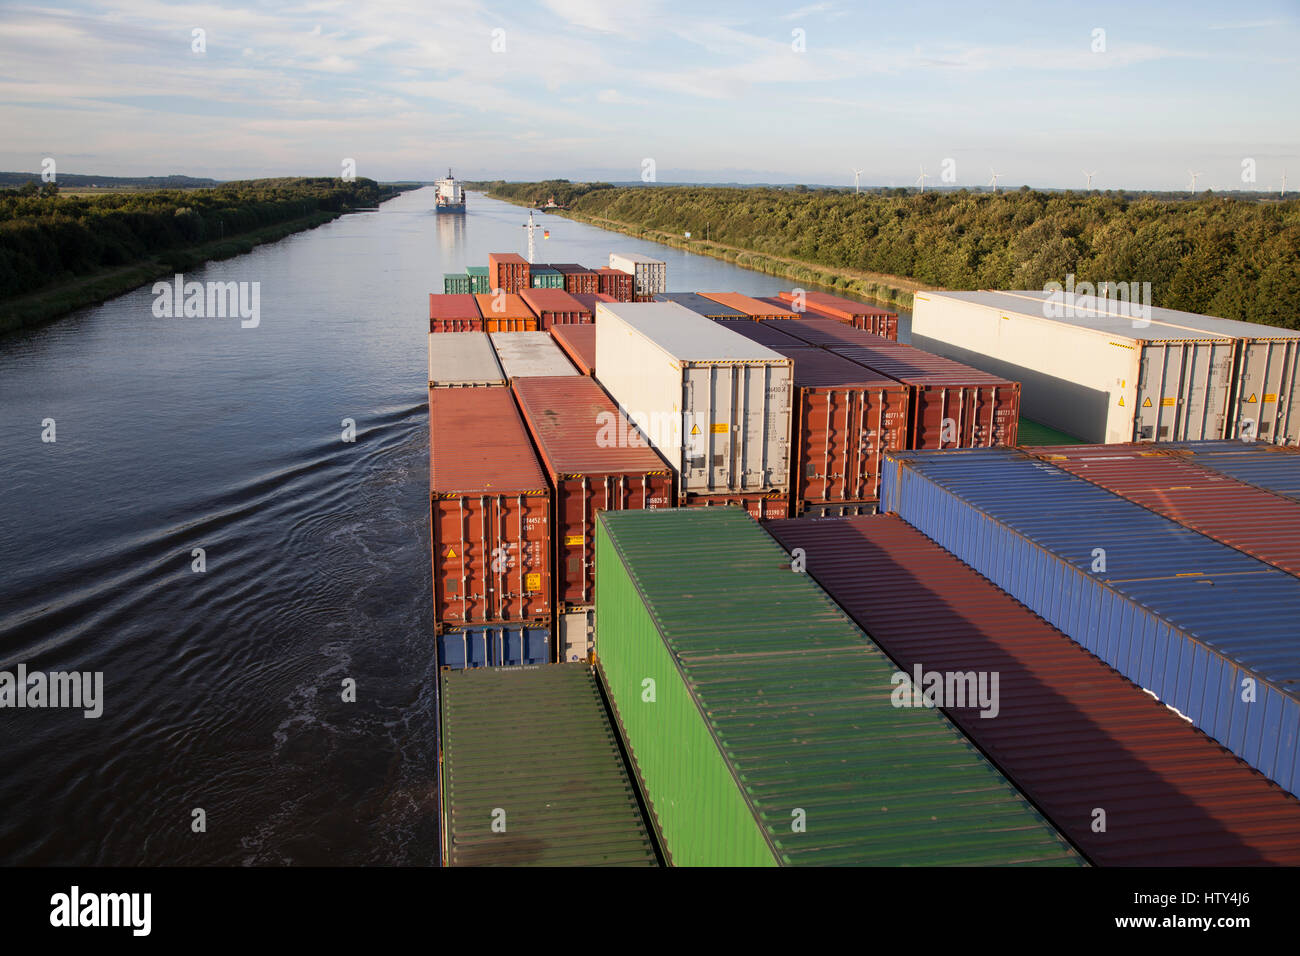 Containership on Kiel Canal, Germany - Stock Image